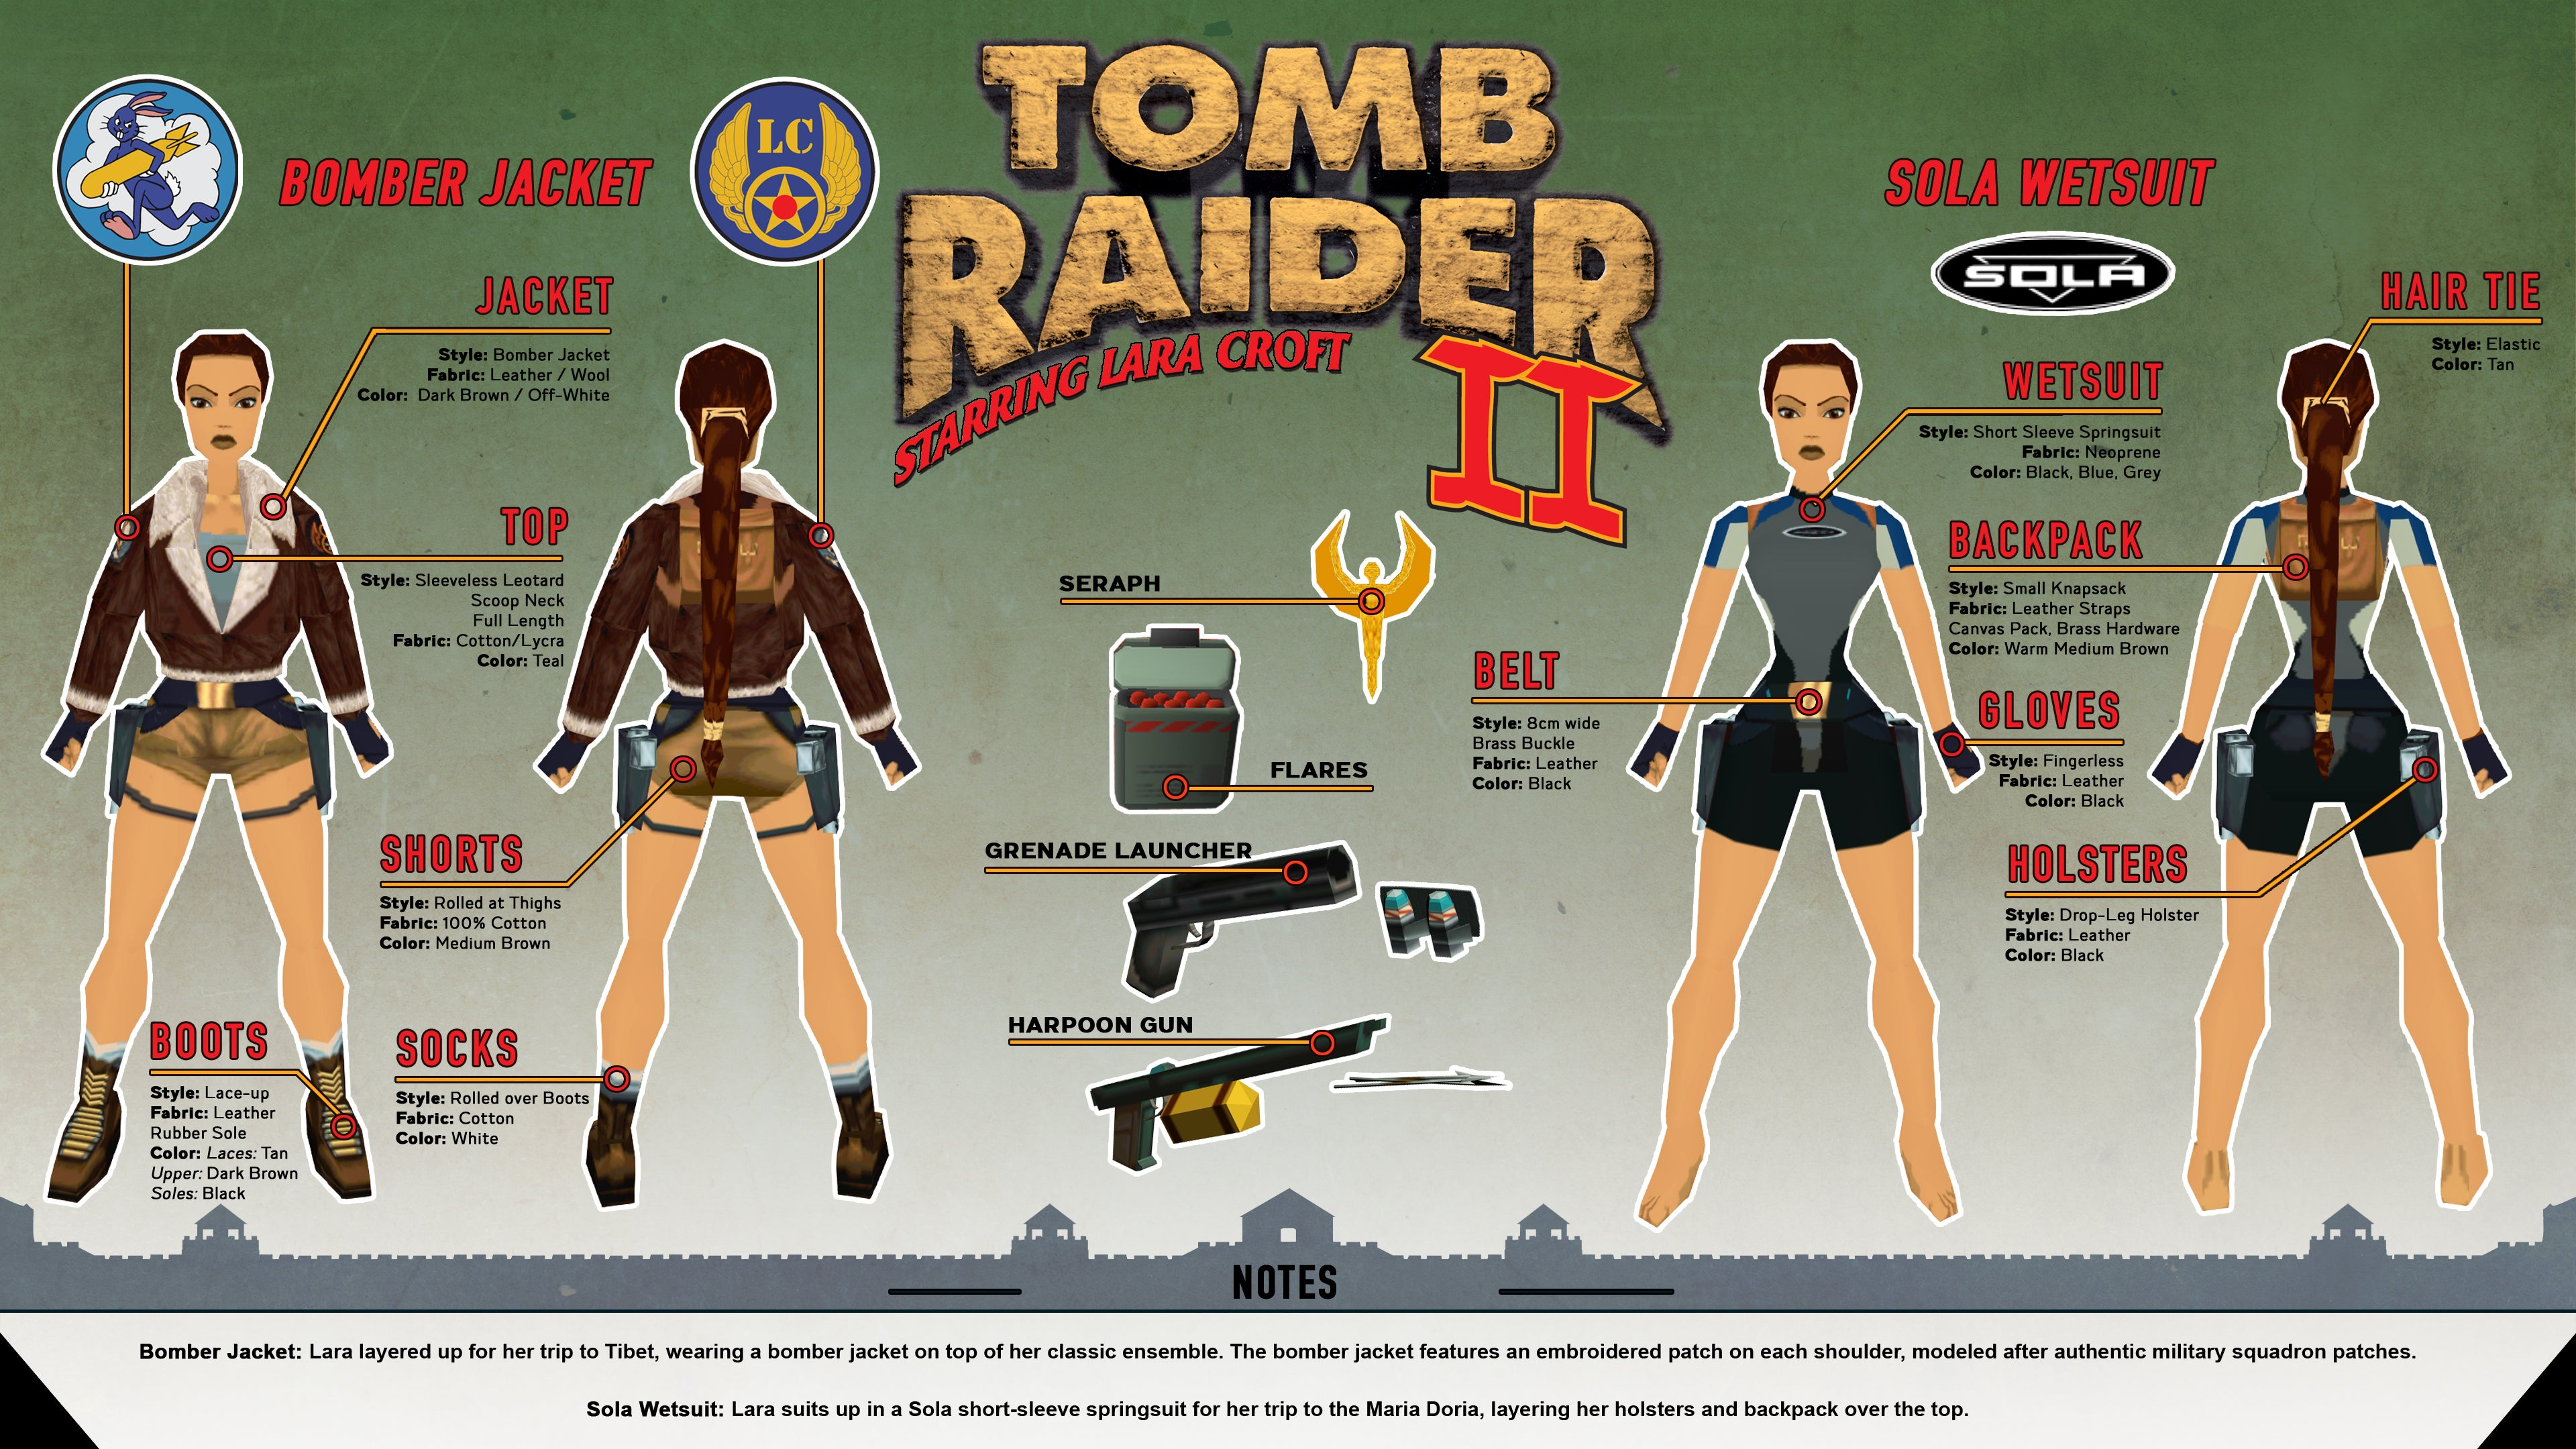 A graphic showing a cosplay guide for both Lara Croft's bomber jacket outfit and the sola wetsuit outfit from Tomb Raider II. The TRII logo is at the top and the bottom has a great wall element spanning the bottom. The front and back of both outfits are featured with notes, as well as different accessories like her harpoon gun and flares. Written notes are on the bottom of the graphic.